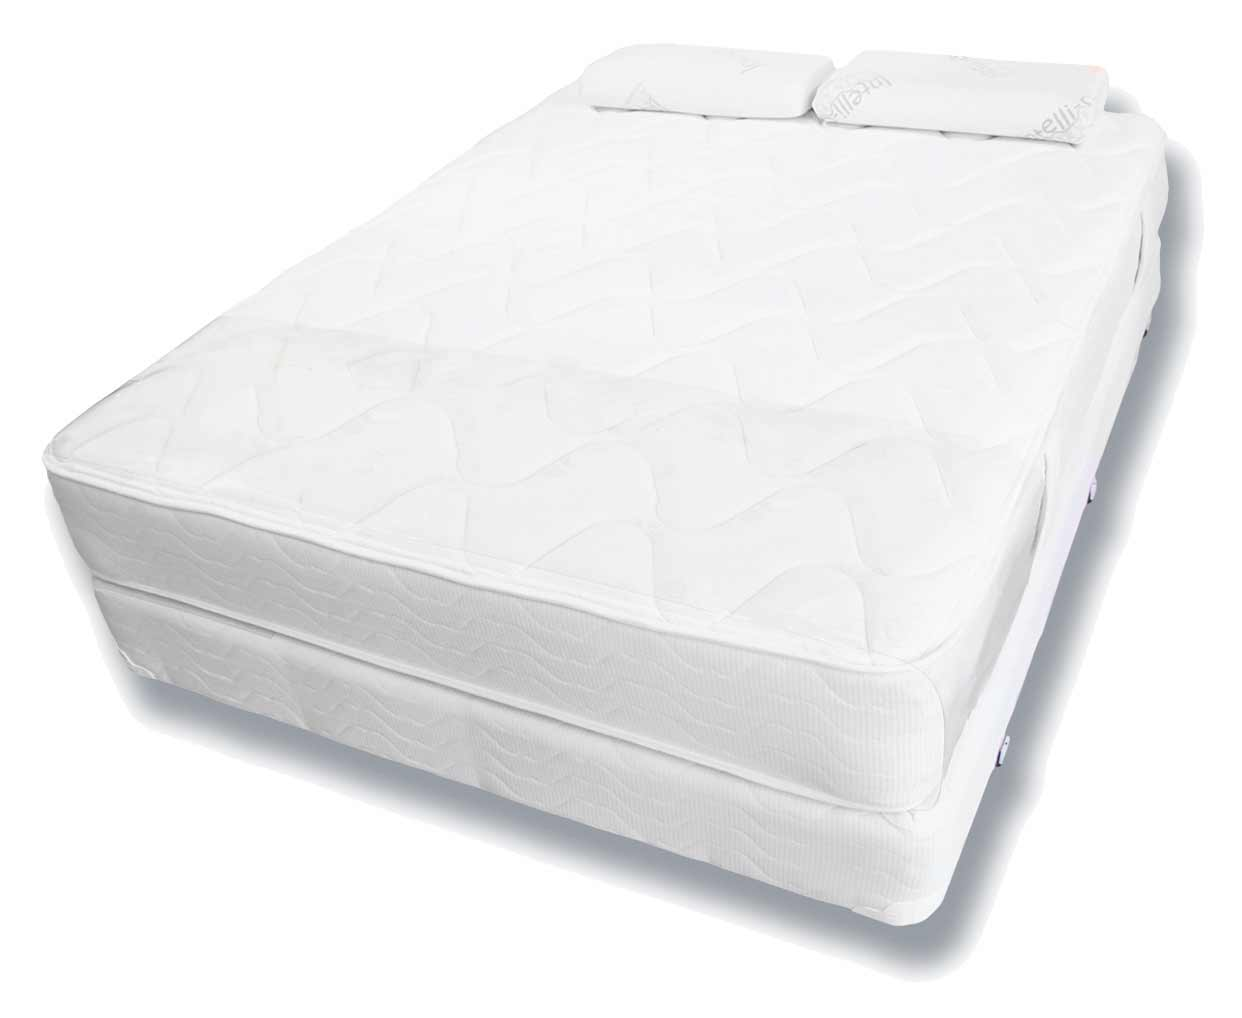 Intelli Gel Best Beds for Back Pain in White